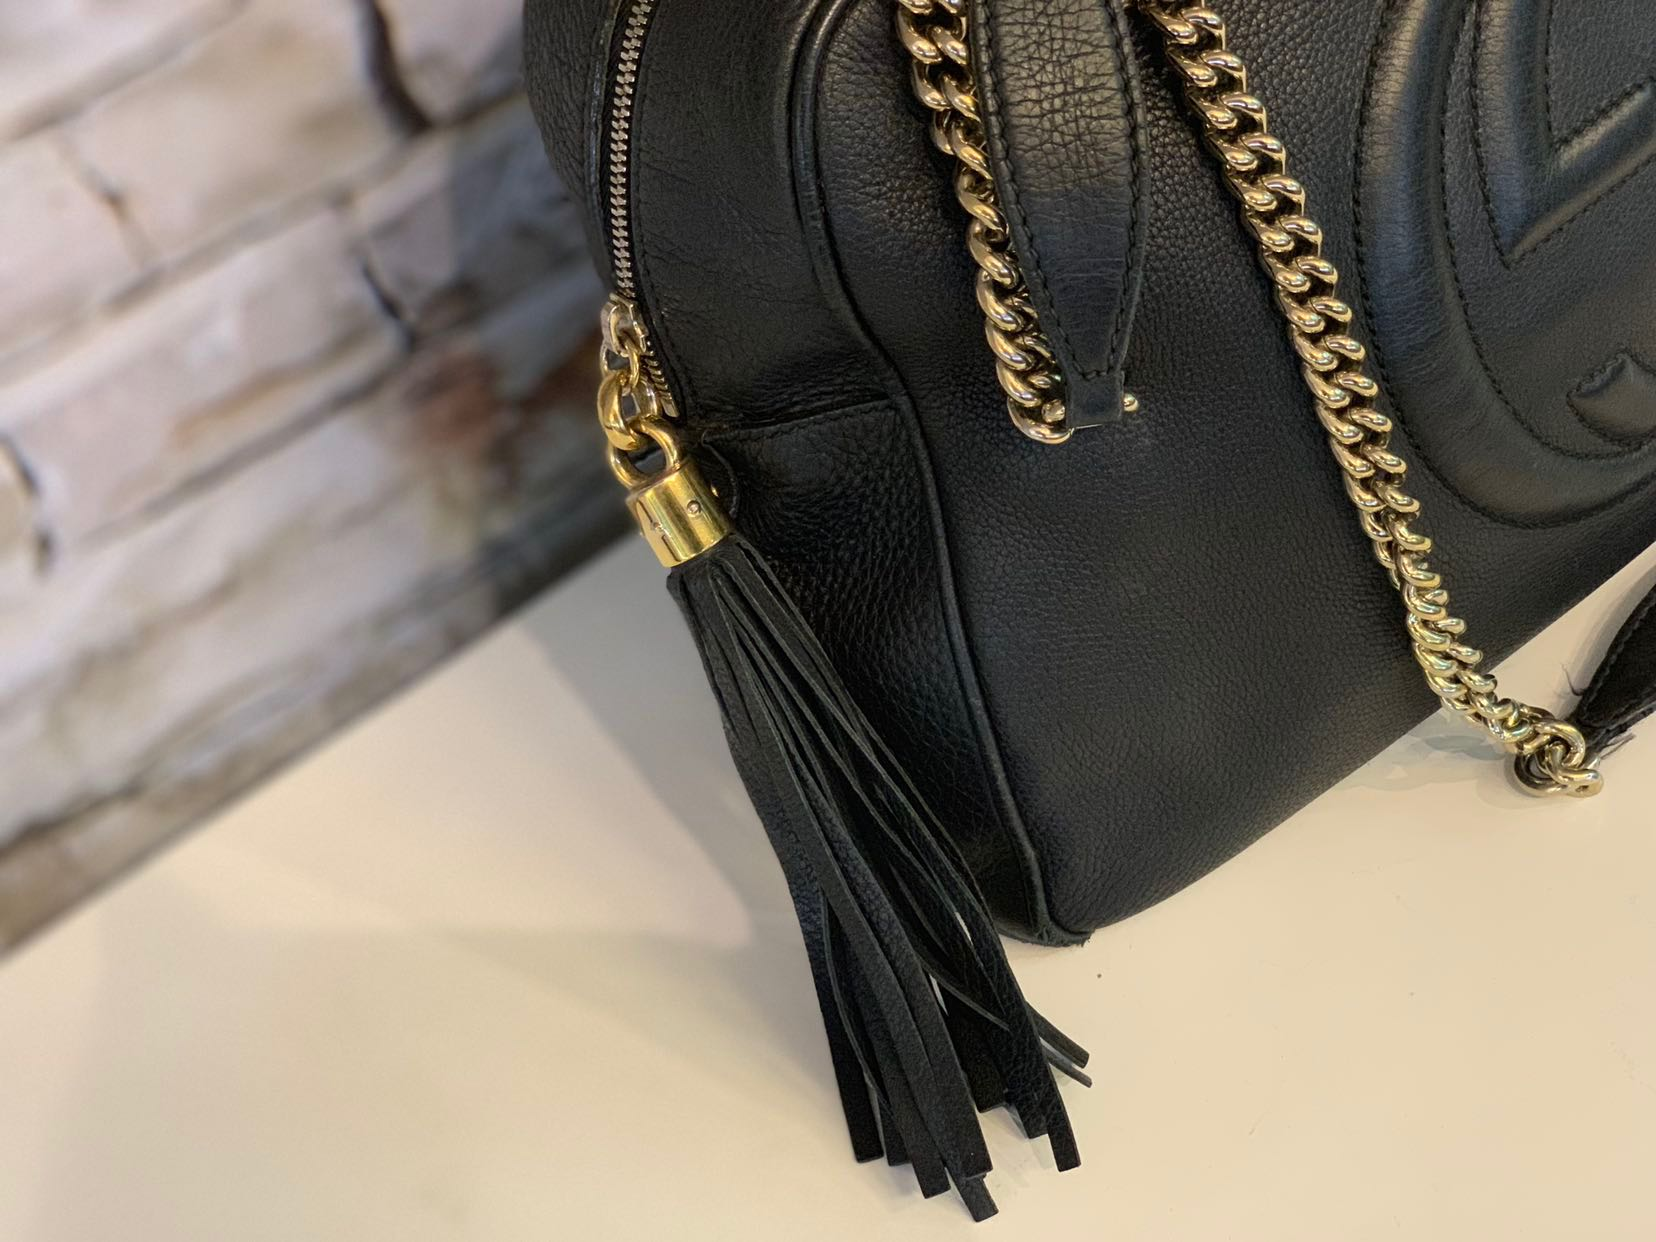 b9f19d6ae52f GUCCI SOHO Leather Medium Chain Bag in Gold Hardware, Luxury, Apparel on  Carousell